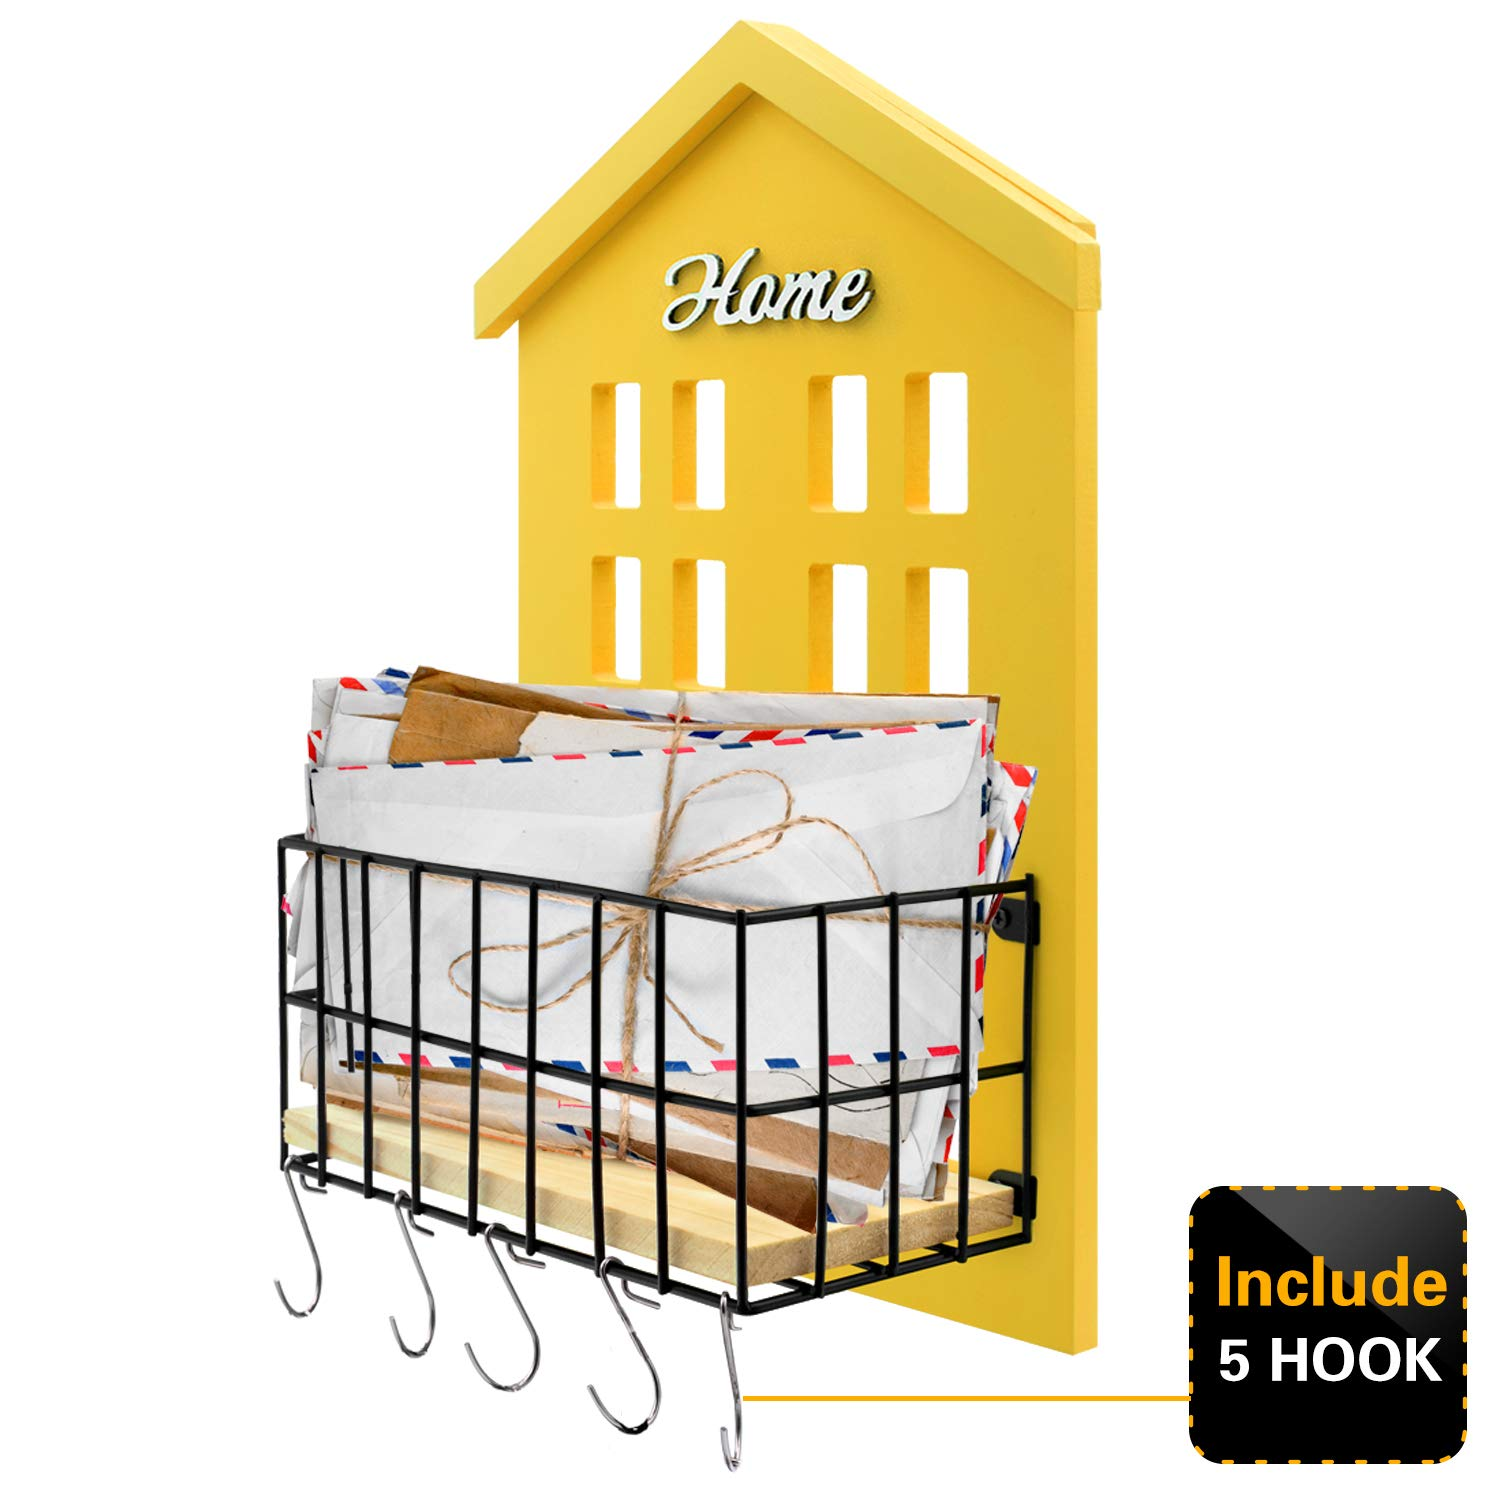 Key Holder -HENGSHENG Wood Wall Mounted.Mail, Letter Holder, Key Rack Organizer for Entryway, Kitchen, Office - Yellow (5 Keys Hooks)